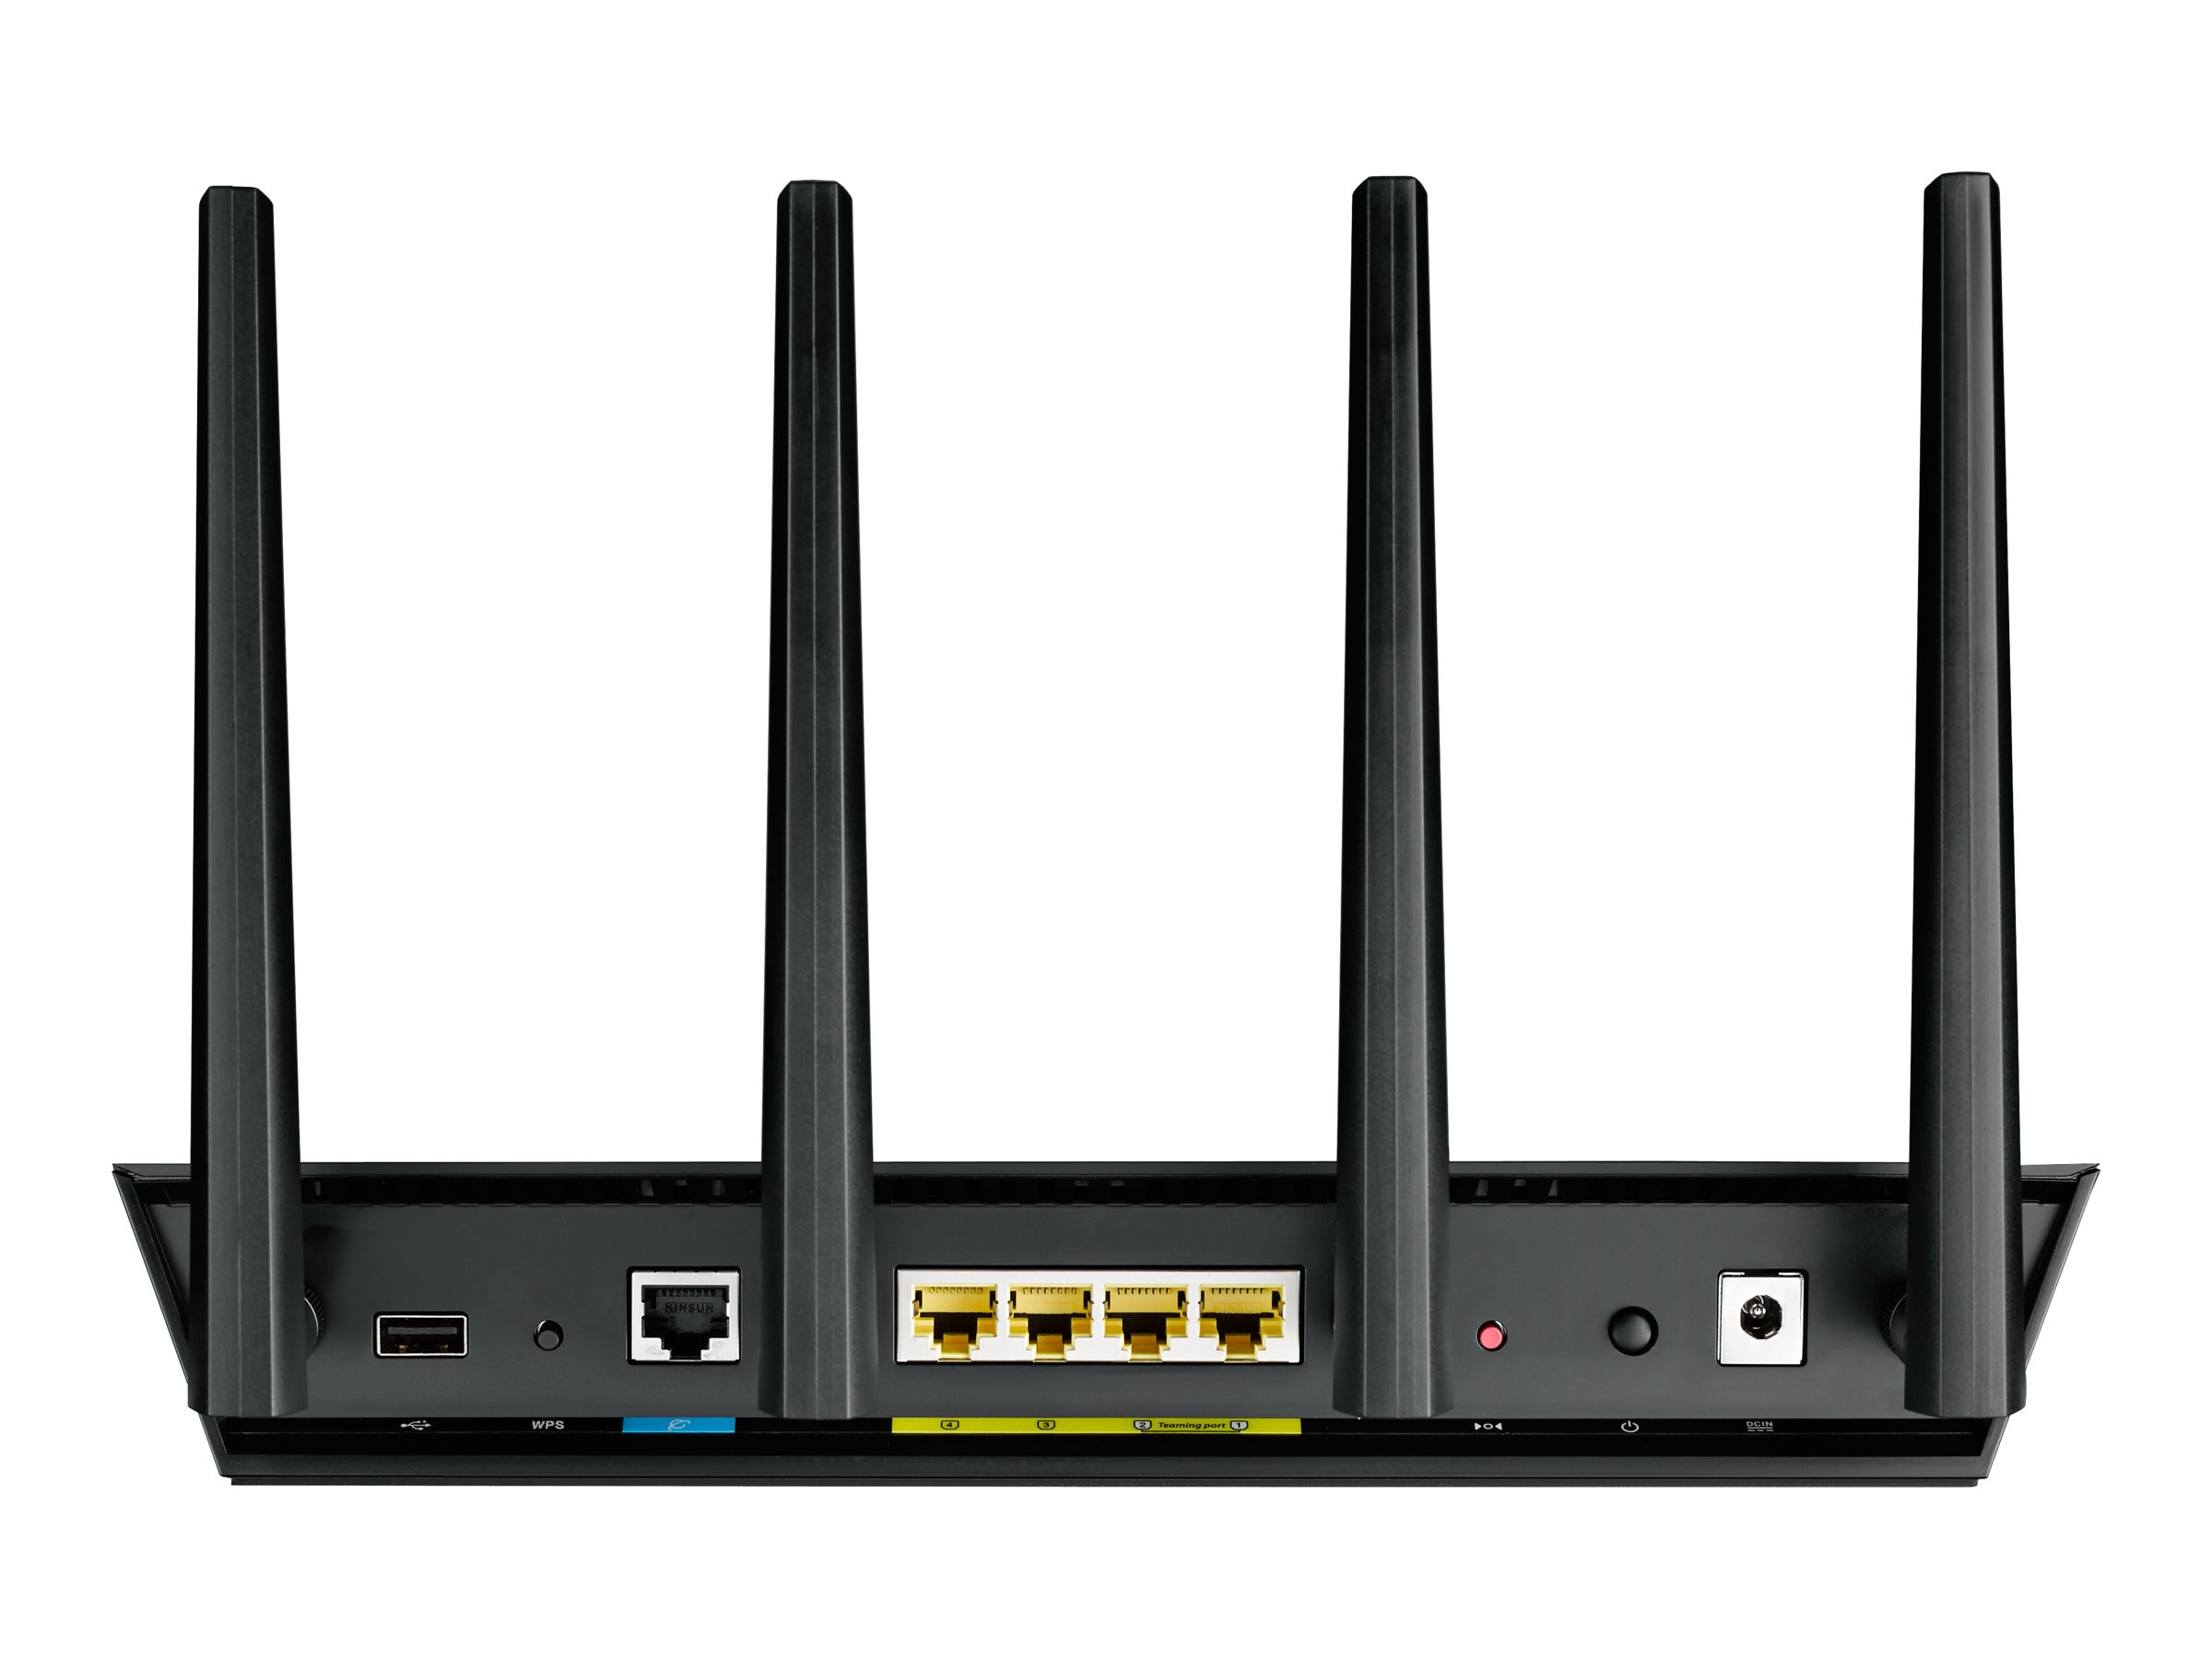 Asus Wireless AC2400 Dual-Band Gigabit Router, RT-AC87U